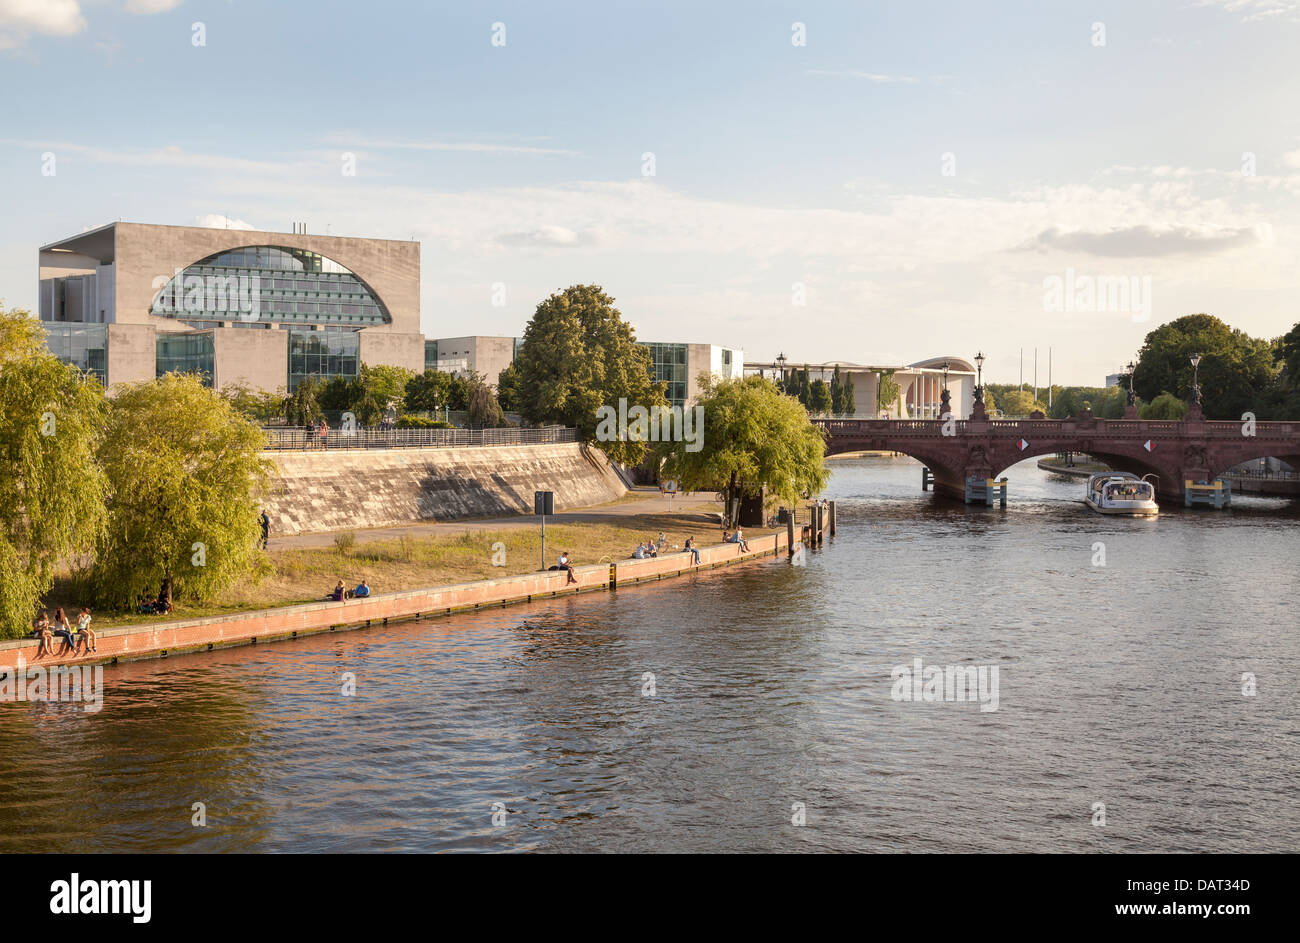 River Spree with Moltke Bridge and Bundeskanzleramt, Berlin, Germany Stock Photo